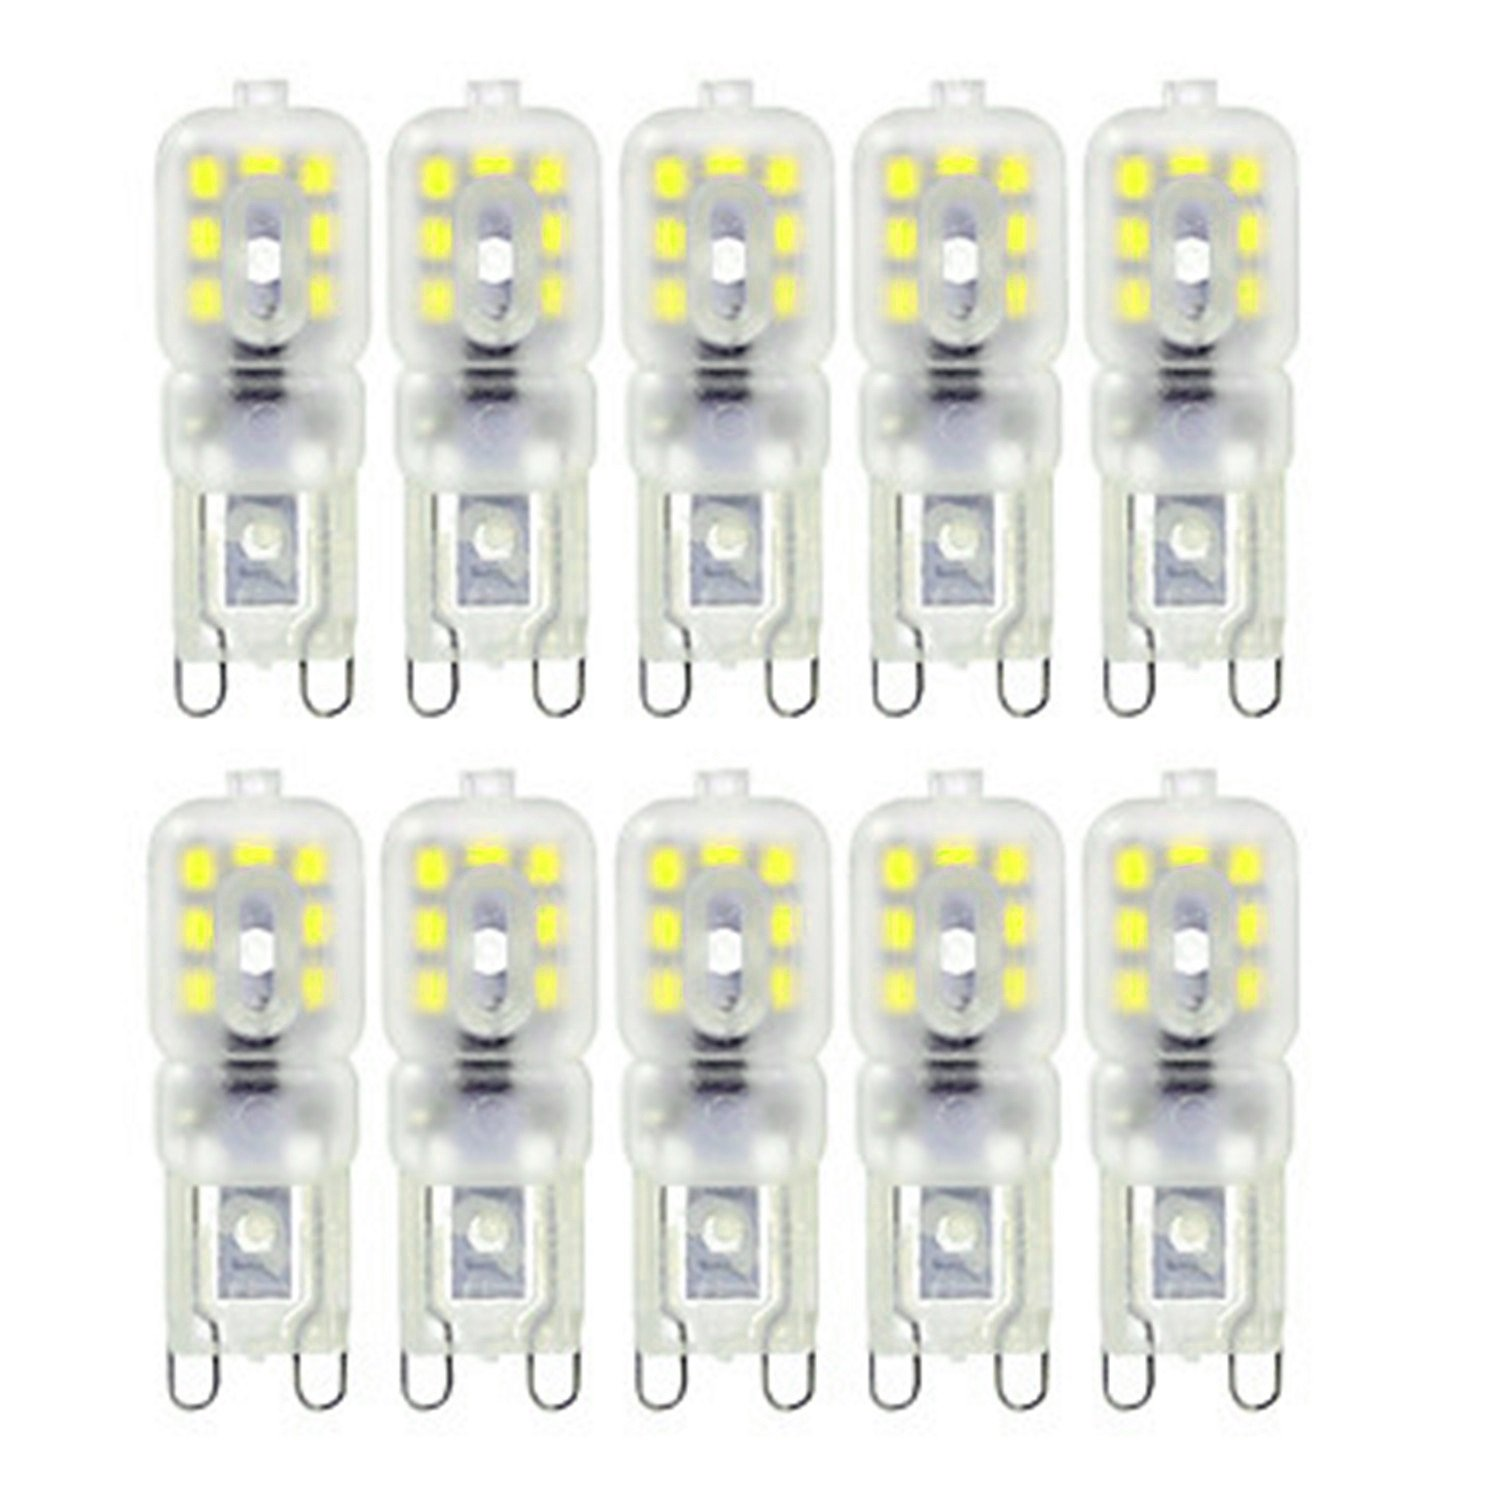 Warm White LL Dimmable 4W G9 14LED 2835SMD 300-400 Lm Cool White Decorative LED Bi-pin Lights AC 220-240V (10-Pack) (Size   Warm White)